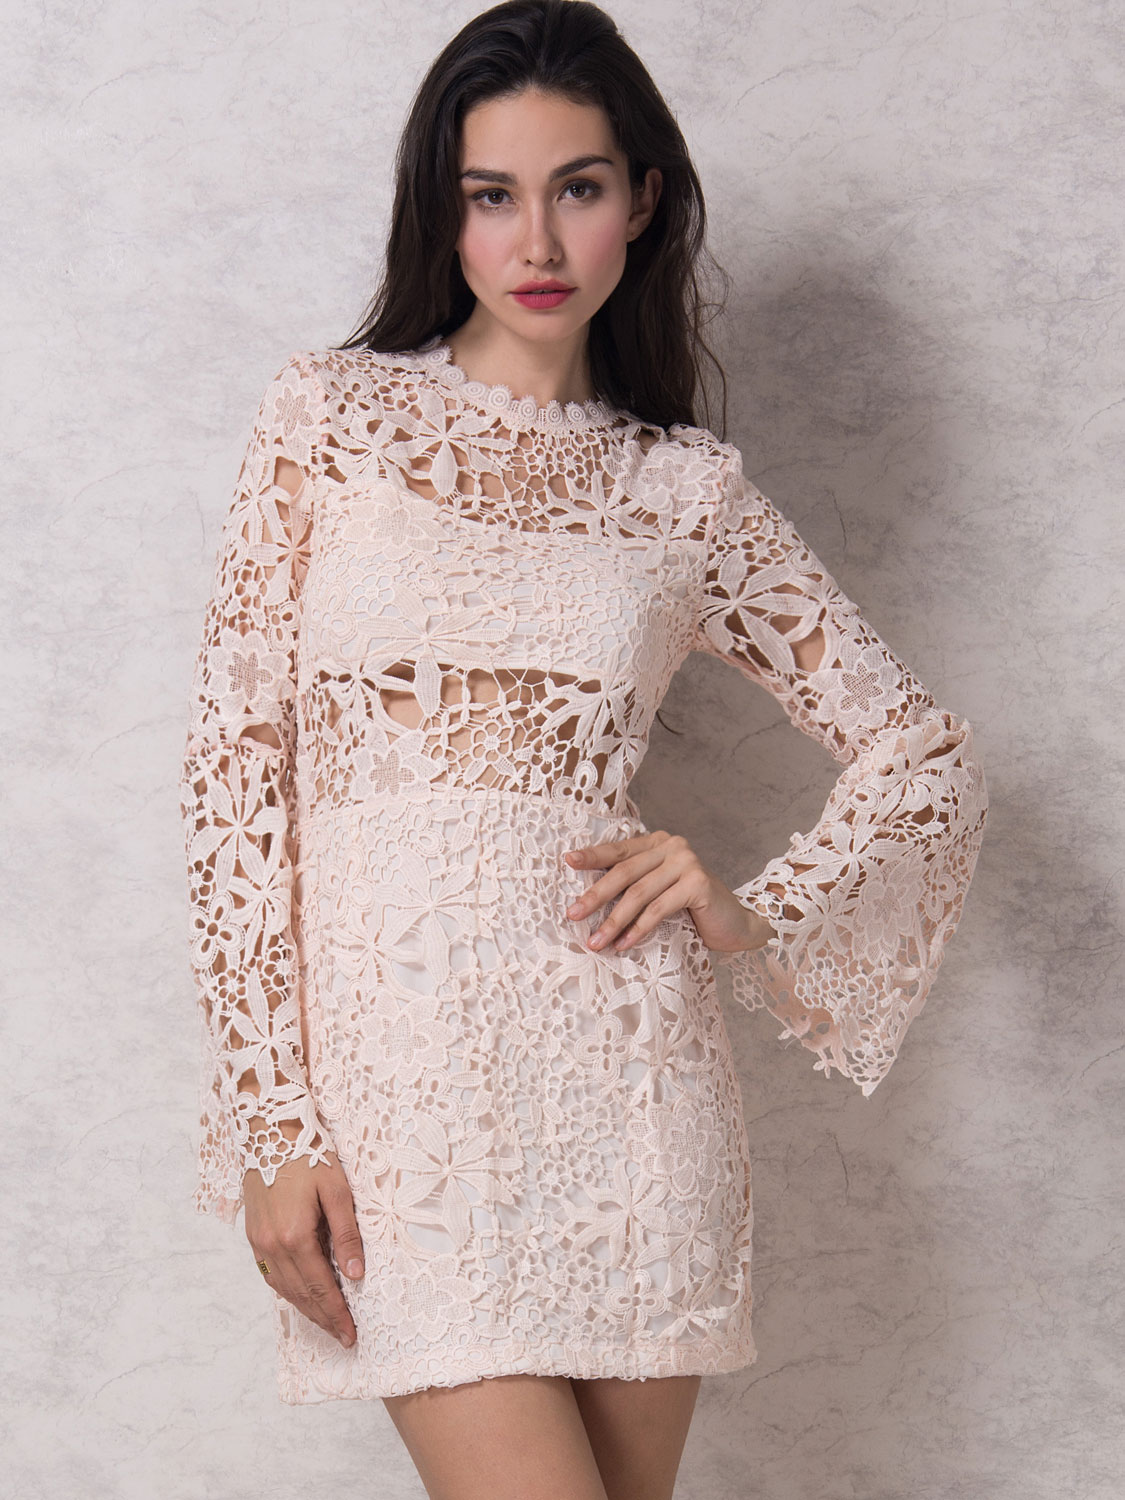 lace dresses pink flared sleeve lined crochet lace bodycon dress JTOZBHK